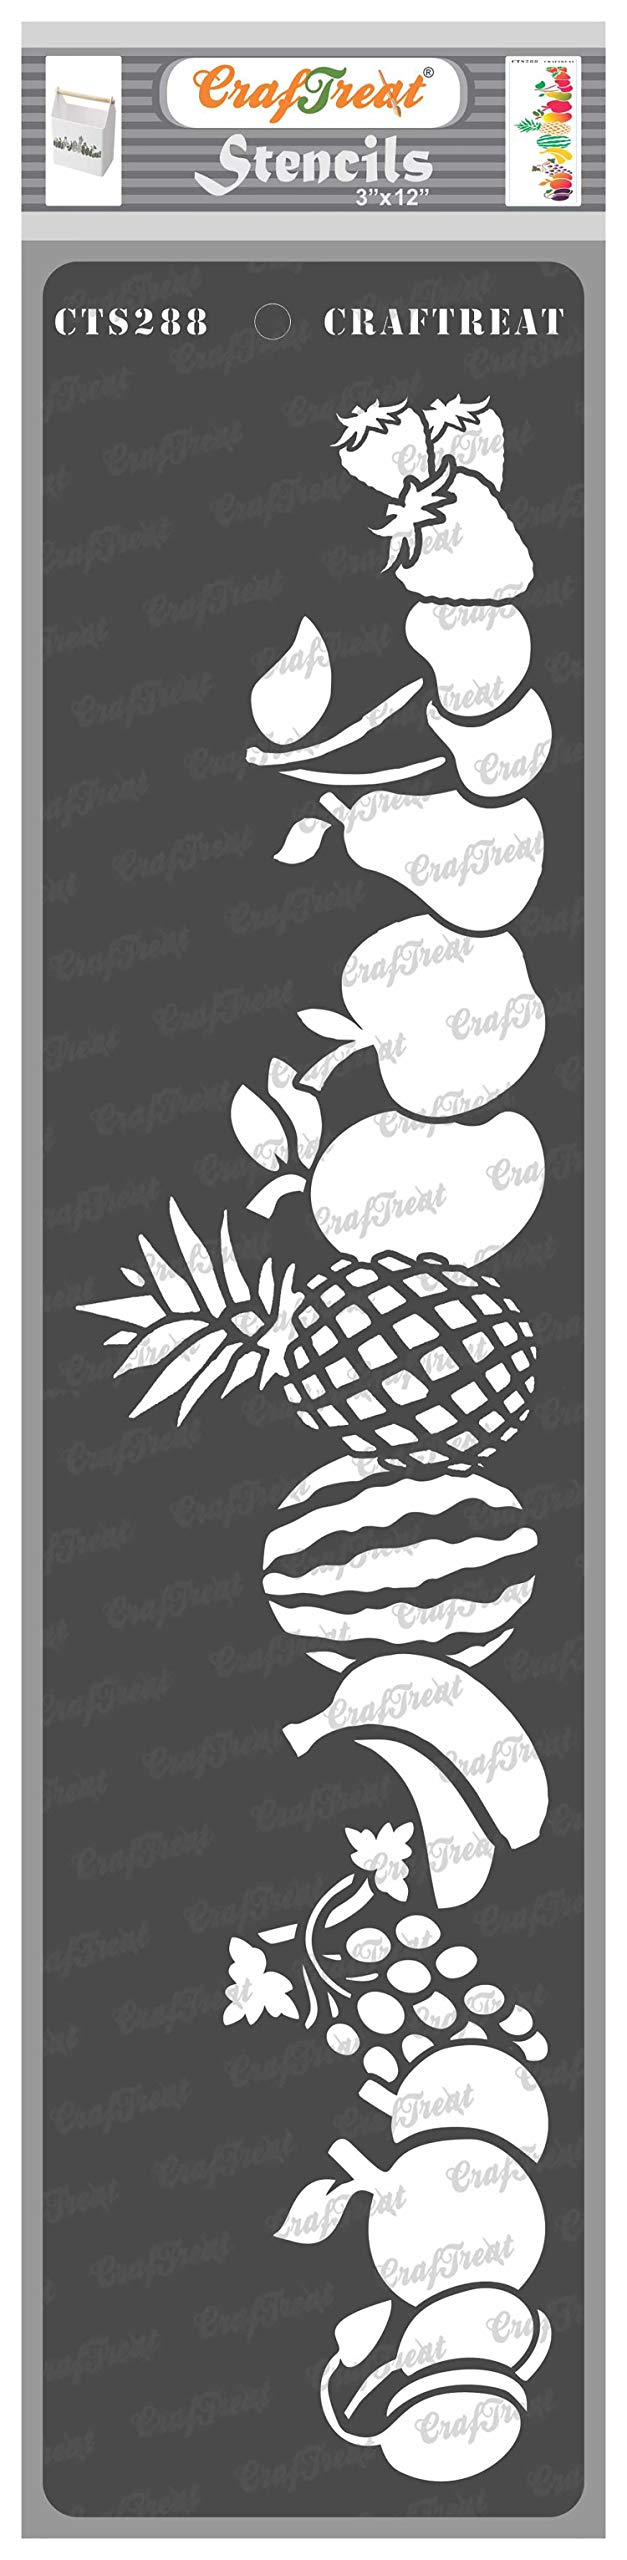 CrafTreat Fruit Border Stencils for Painting on Wood, Canvas, Paper, Fabric, Floor, Wall and Tile - Fruits Border - 3x12 Inches - Reusable DIY Art and Craft Stencils for Borders - Fruit Stencil